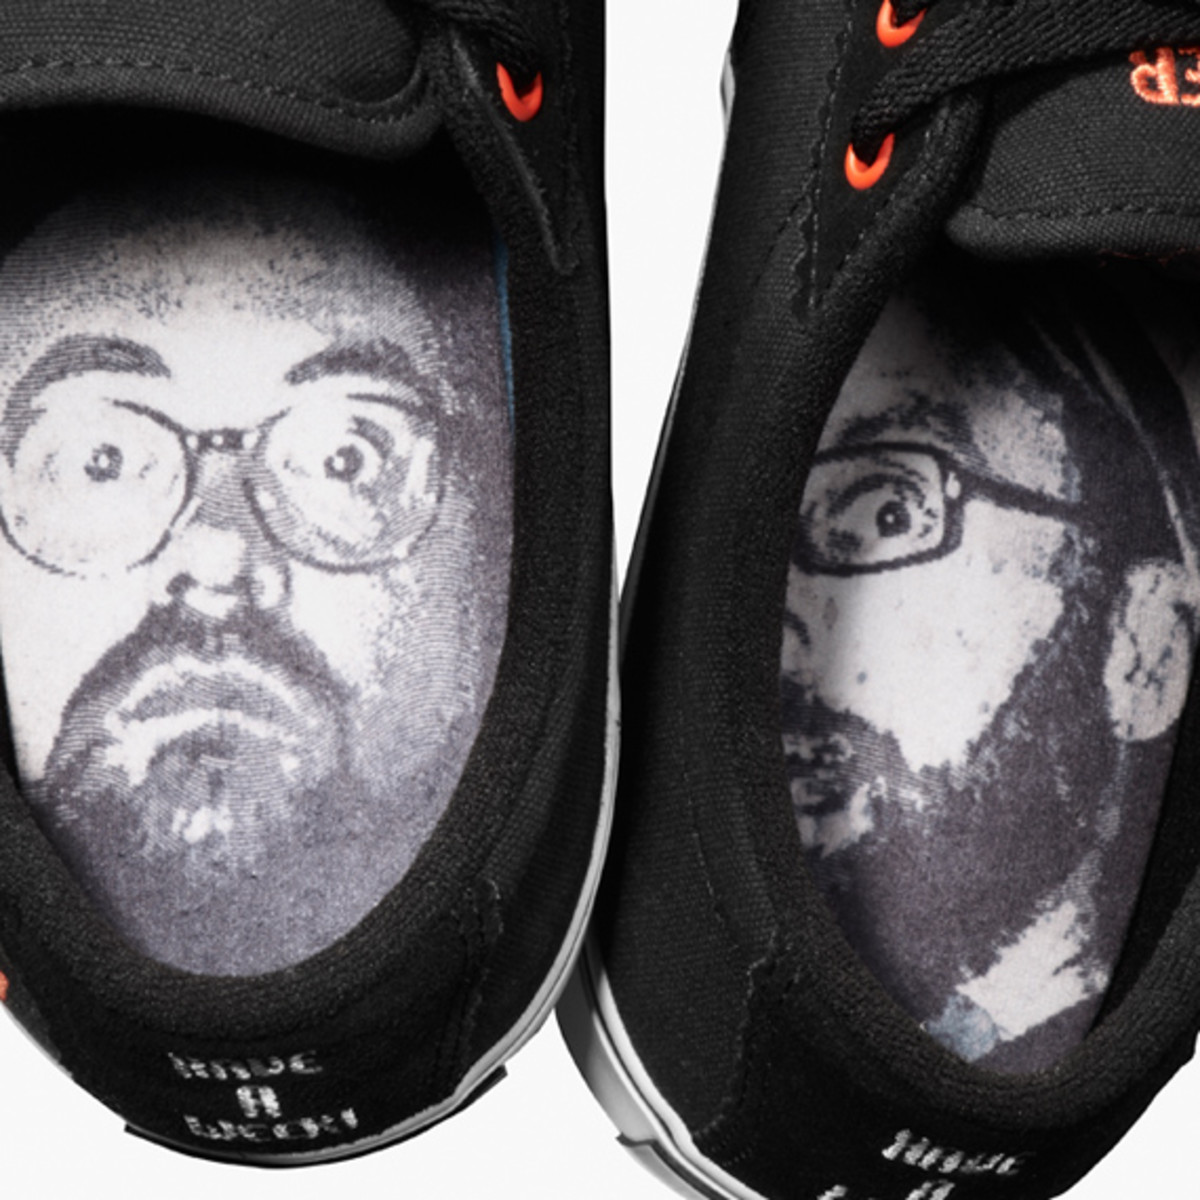 kevin-smith-etnies-smeakers-sdcc-2011-launch-13